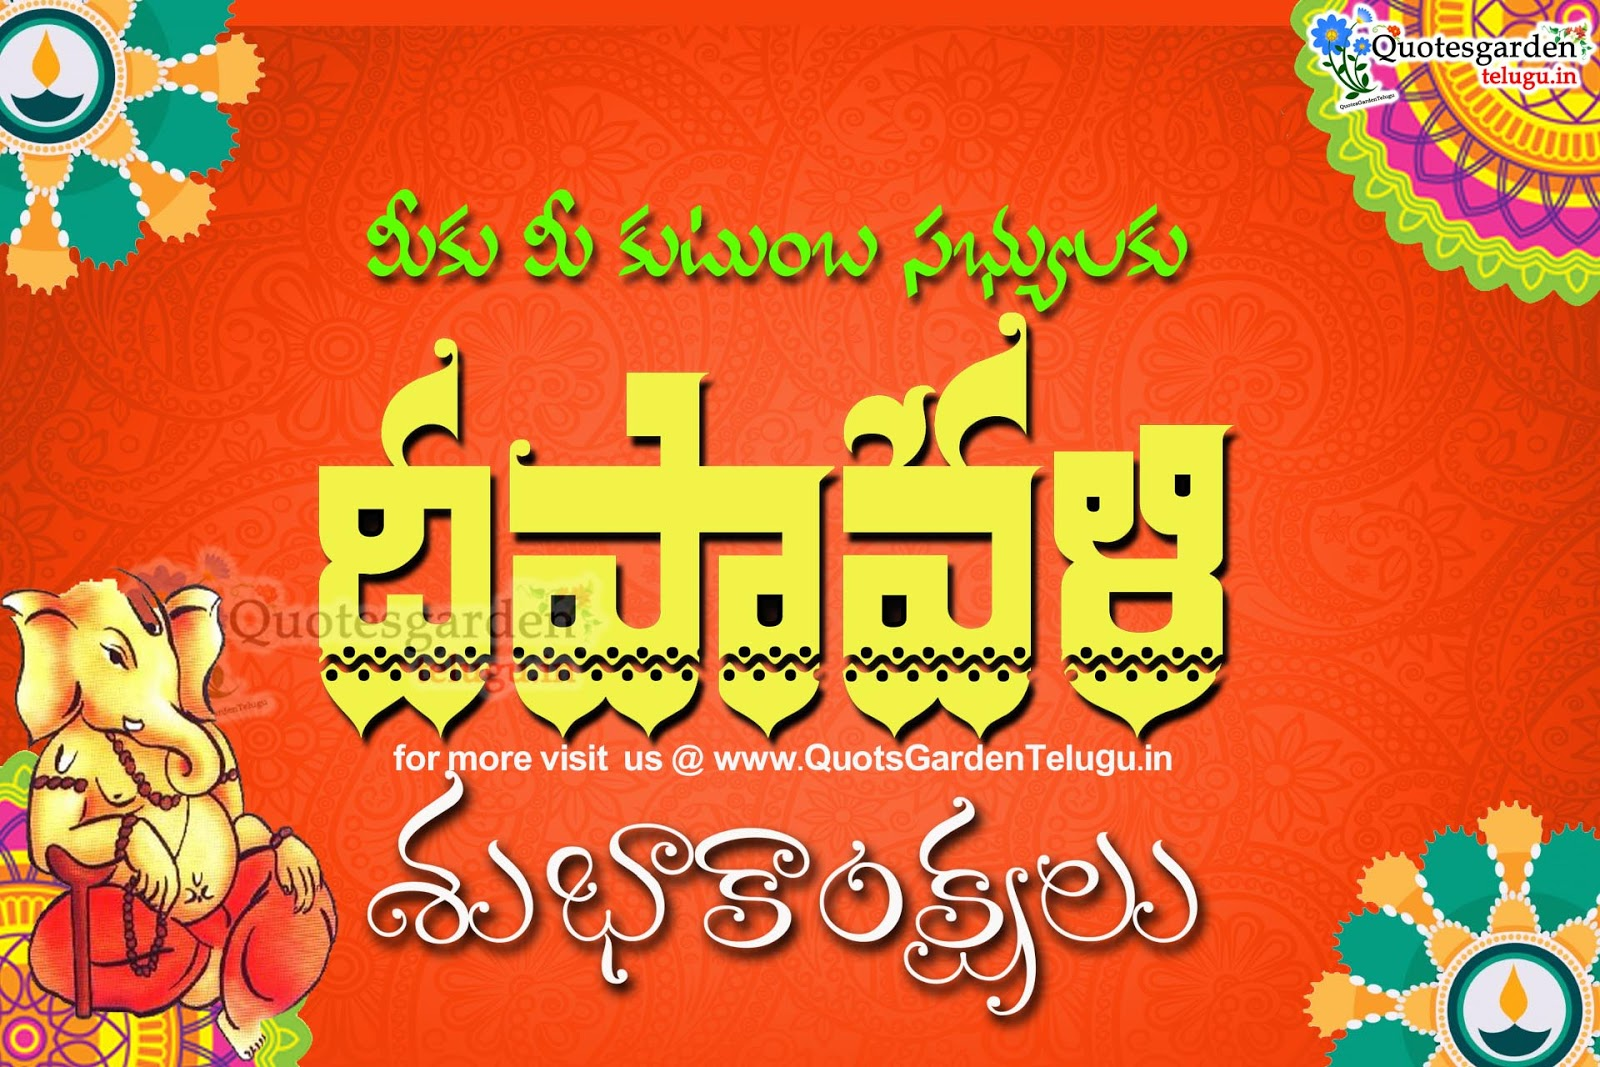 Latest diwali 2017 telugu wishes greetings quotes quotes garden latest diwali 2017 telugu wishes greetings quotes m4hsunfo